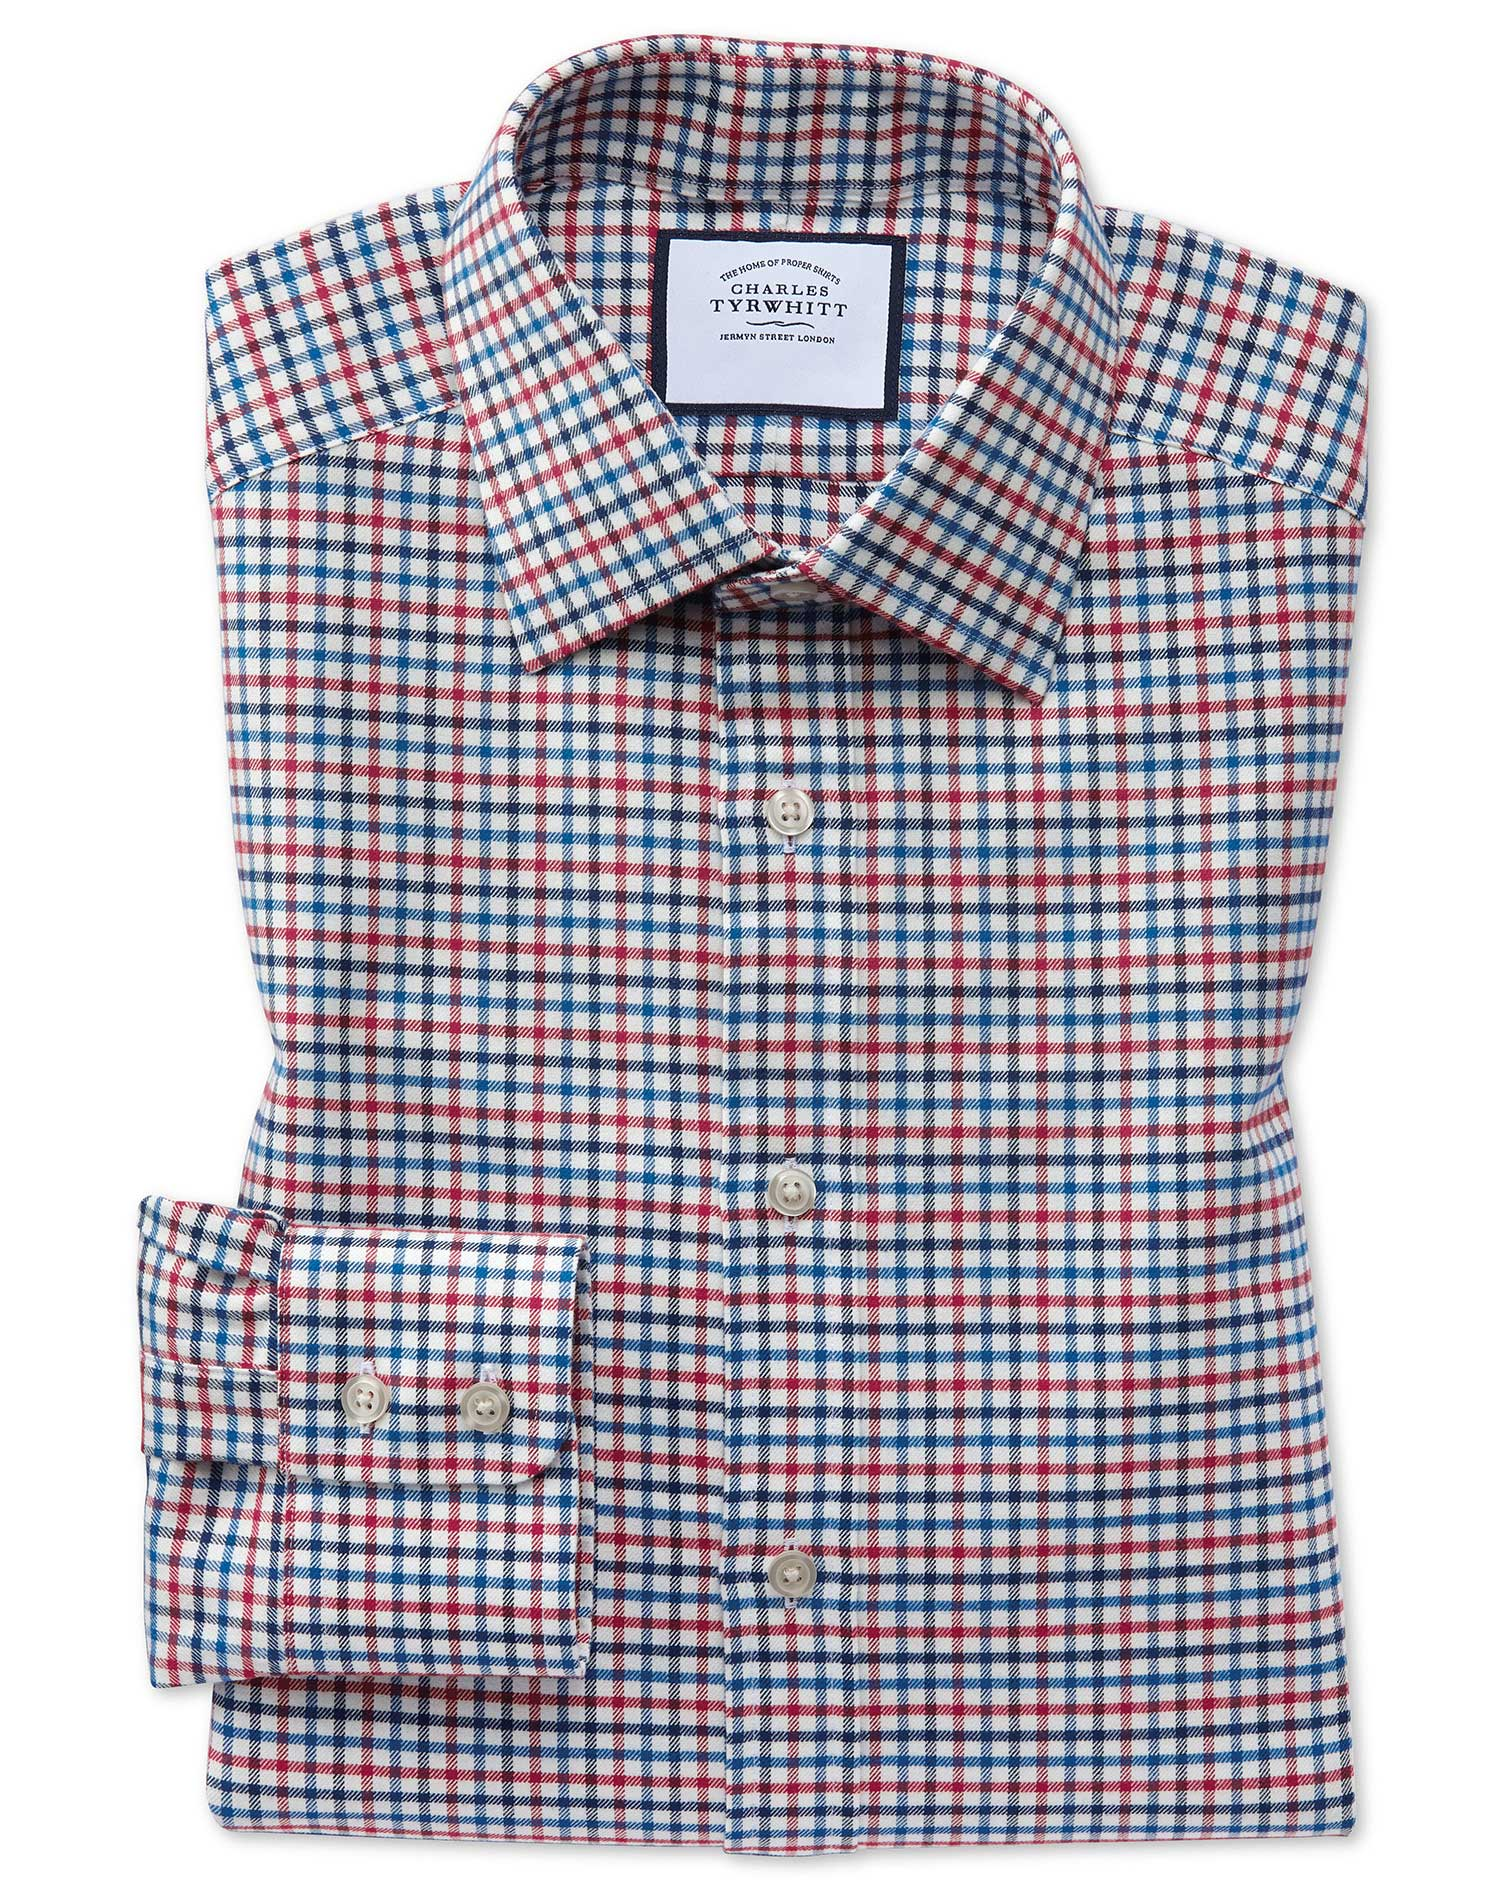 c5004212 Classic fit red and blue country check shirt | Charles Tyrwhitt